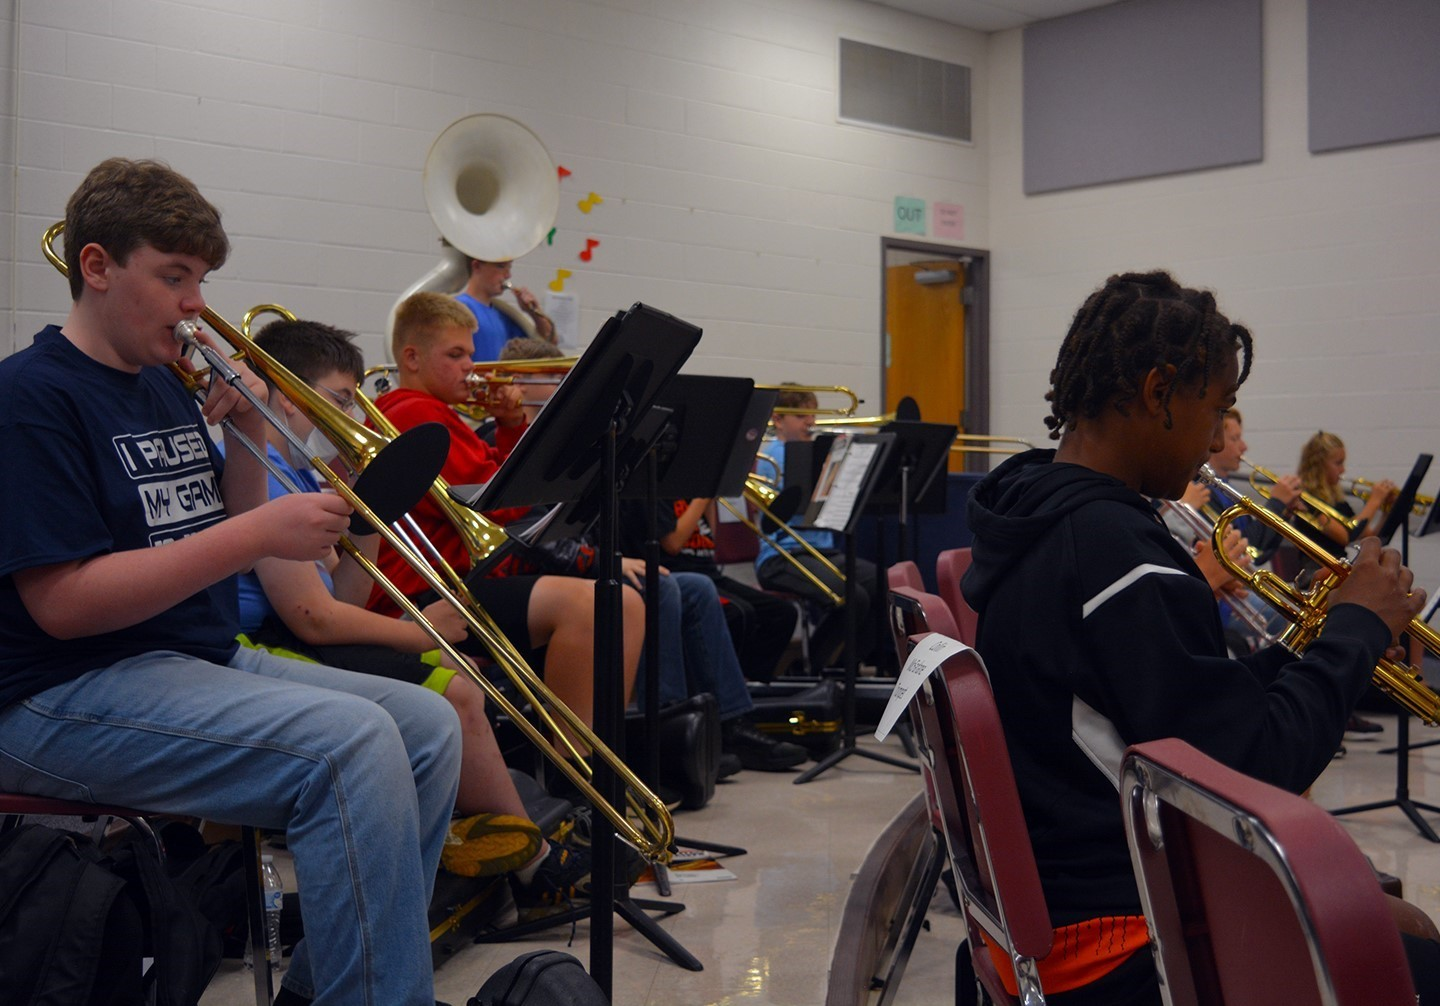 Students practicing in the horn section of the band classroom.